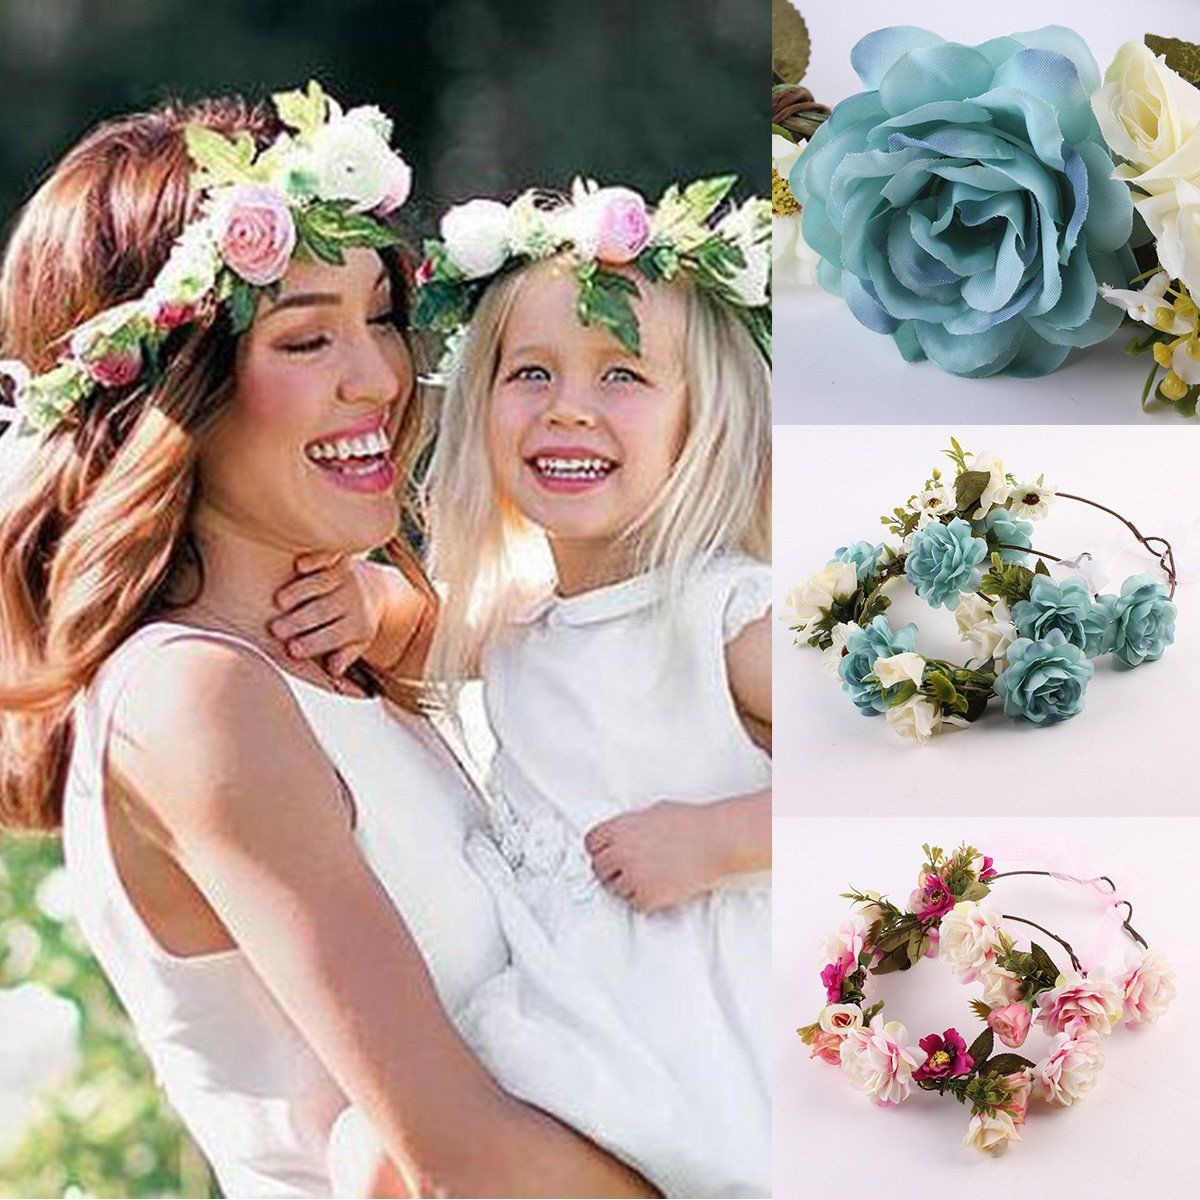 Aliexpress buy 2 pieces parenting cute bohemian flower crown aliexpress buy 2 pieces parenting cute bohemian flower crown festival headband wedding garland floral hairband accessories from reliable accessories izmirmasajfo